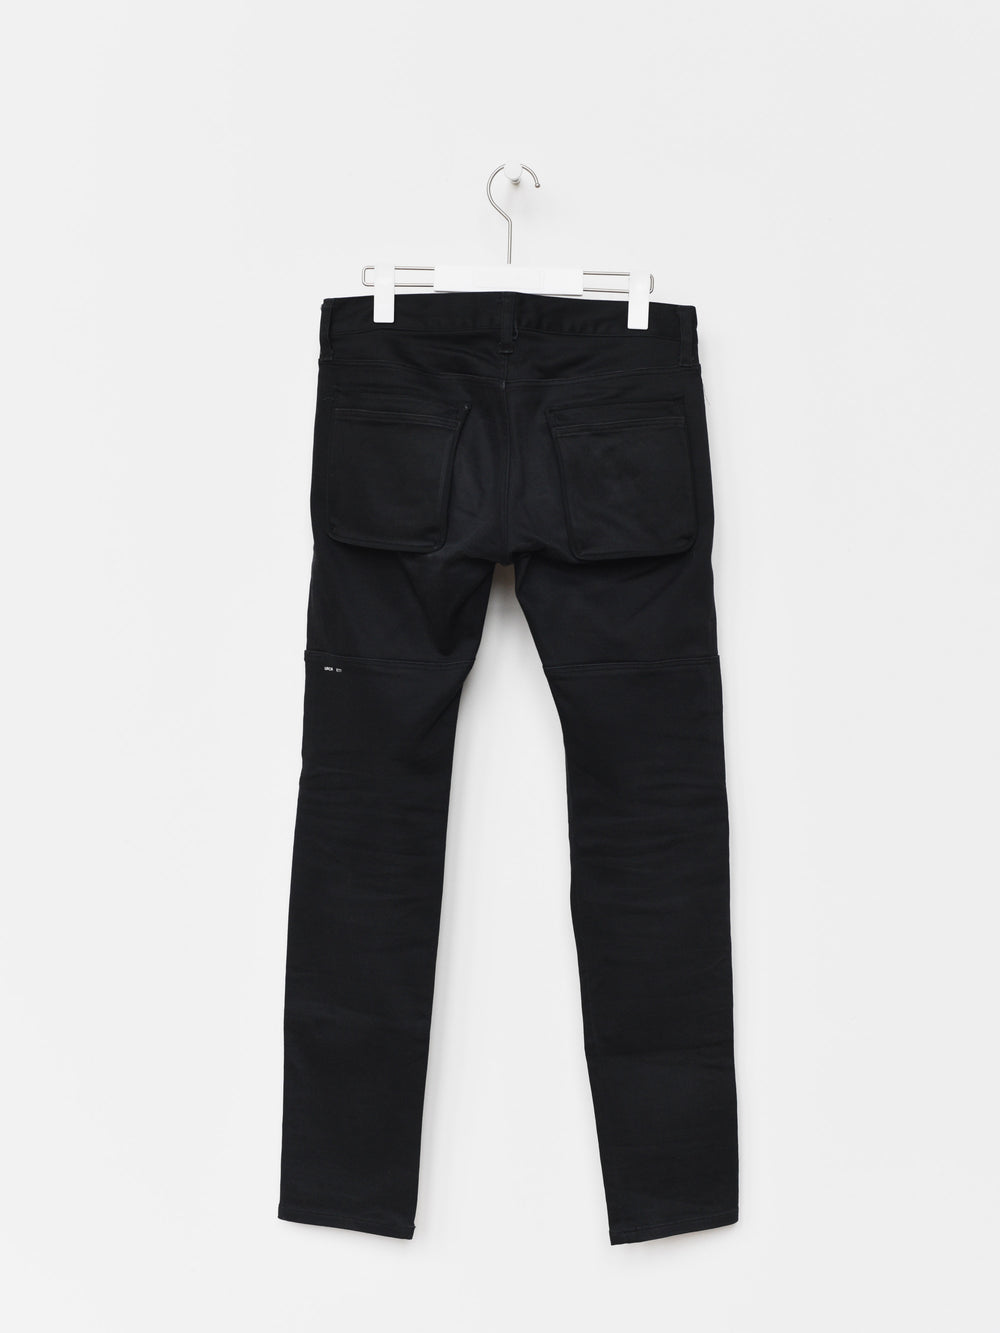 Undercover SS10 Less But Better E4509 Cargo Pants